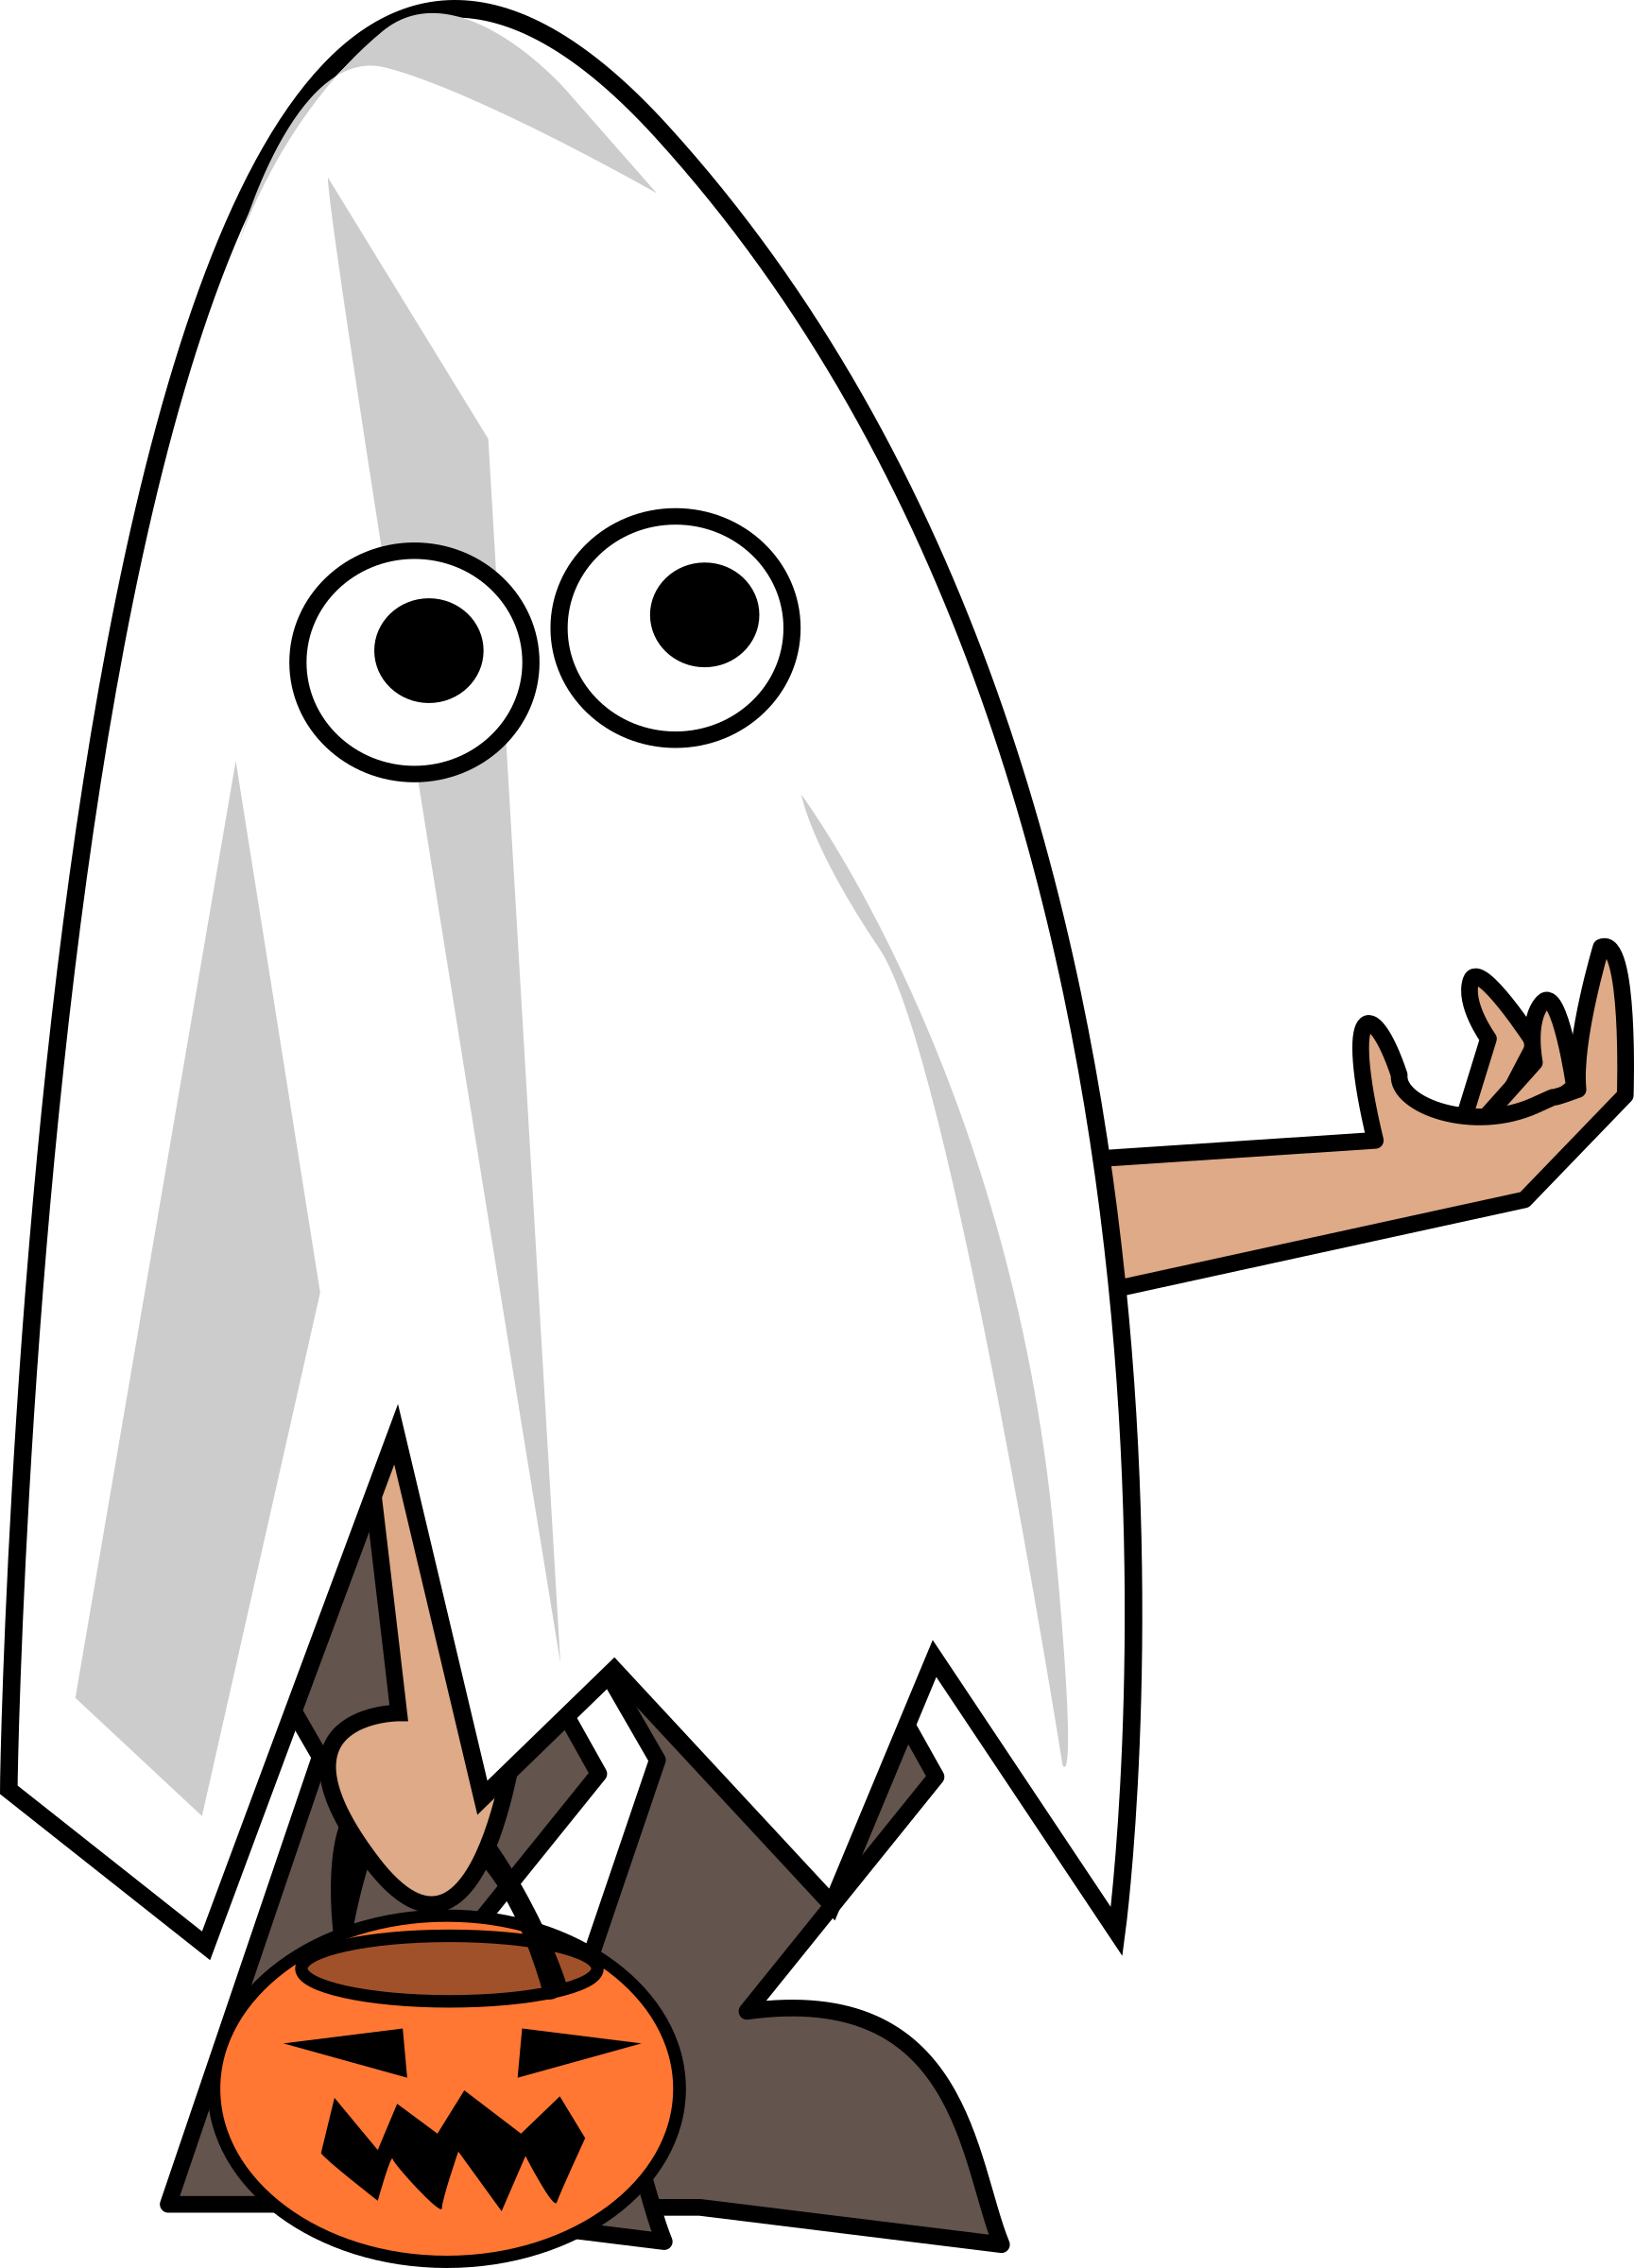 October clipart trick or treater. Remix big image png